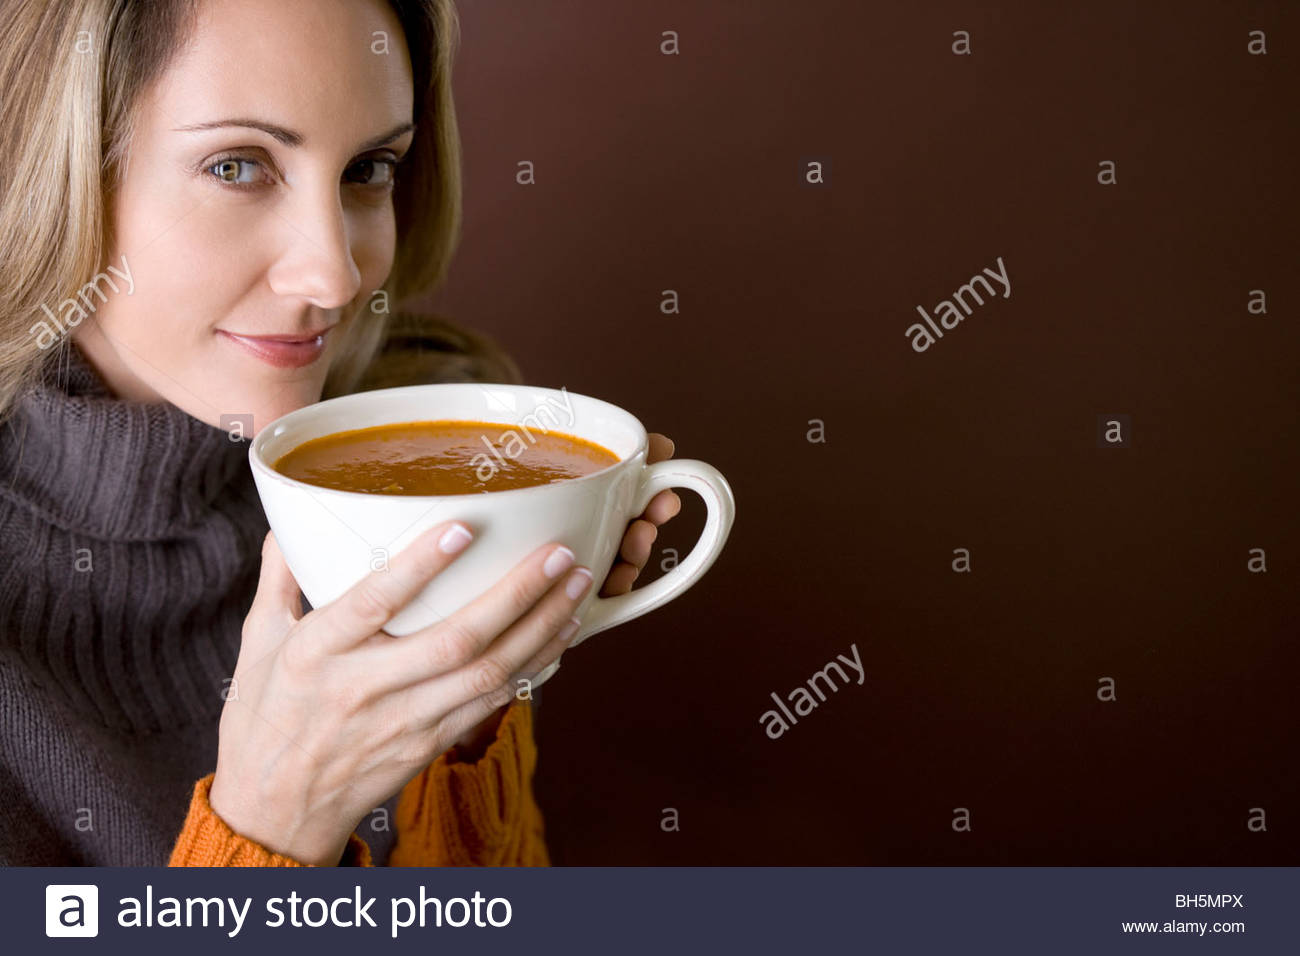 A mid adult woman holding a cup of soup - Stock Image